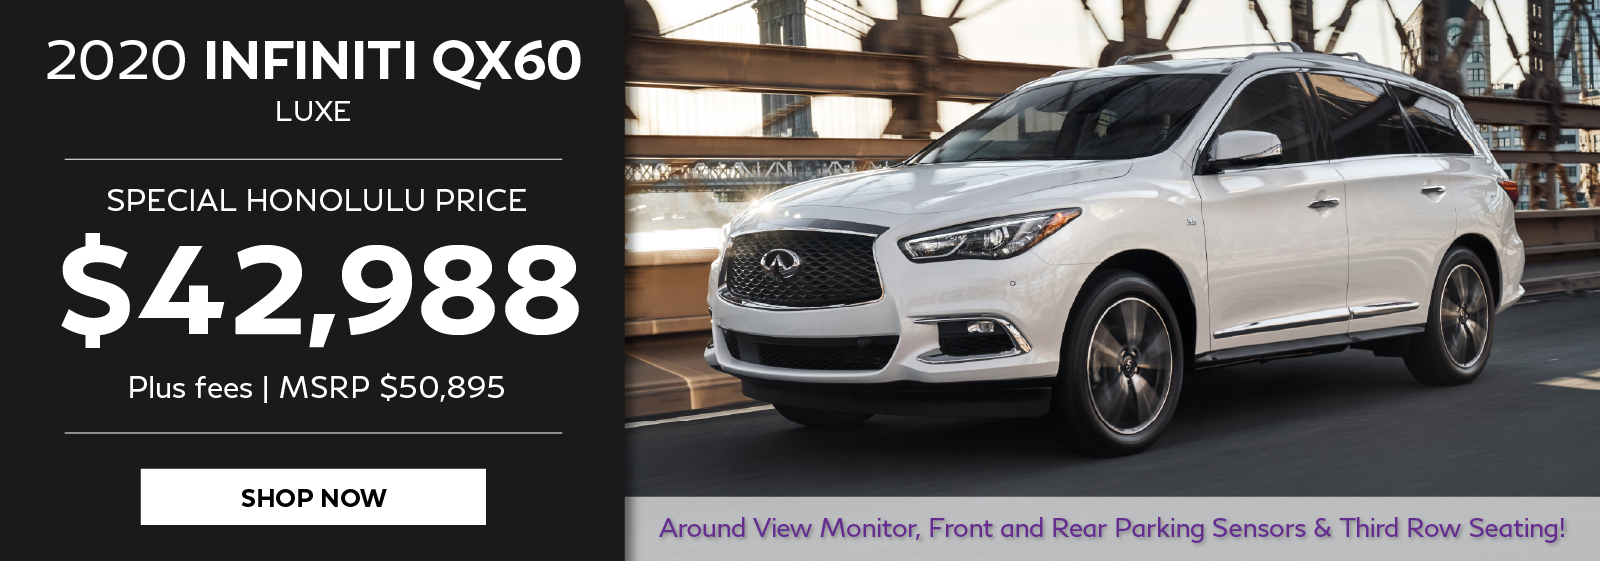 2020 INFINITI QX60 special priing offer. Click to shop now.